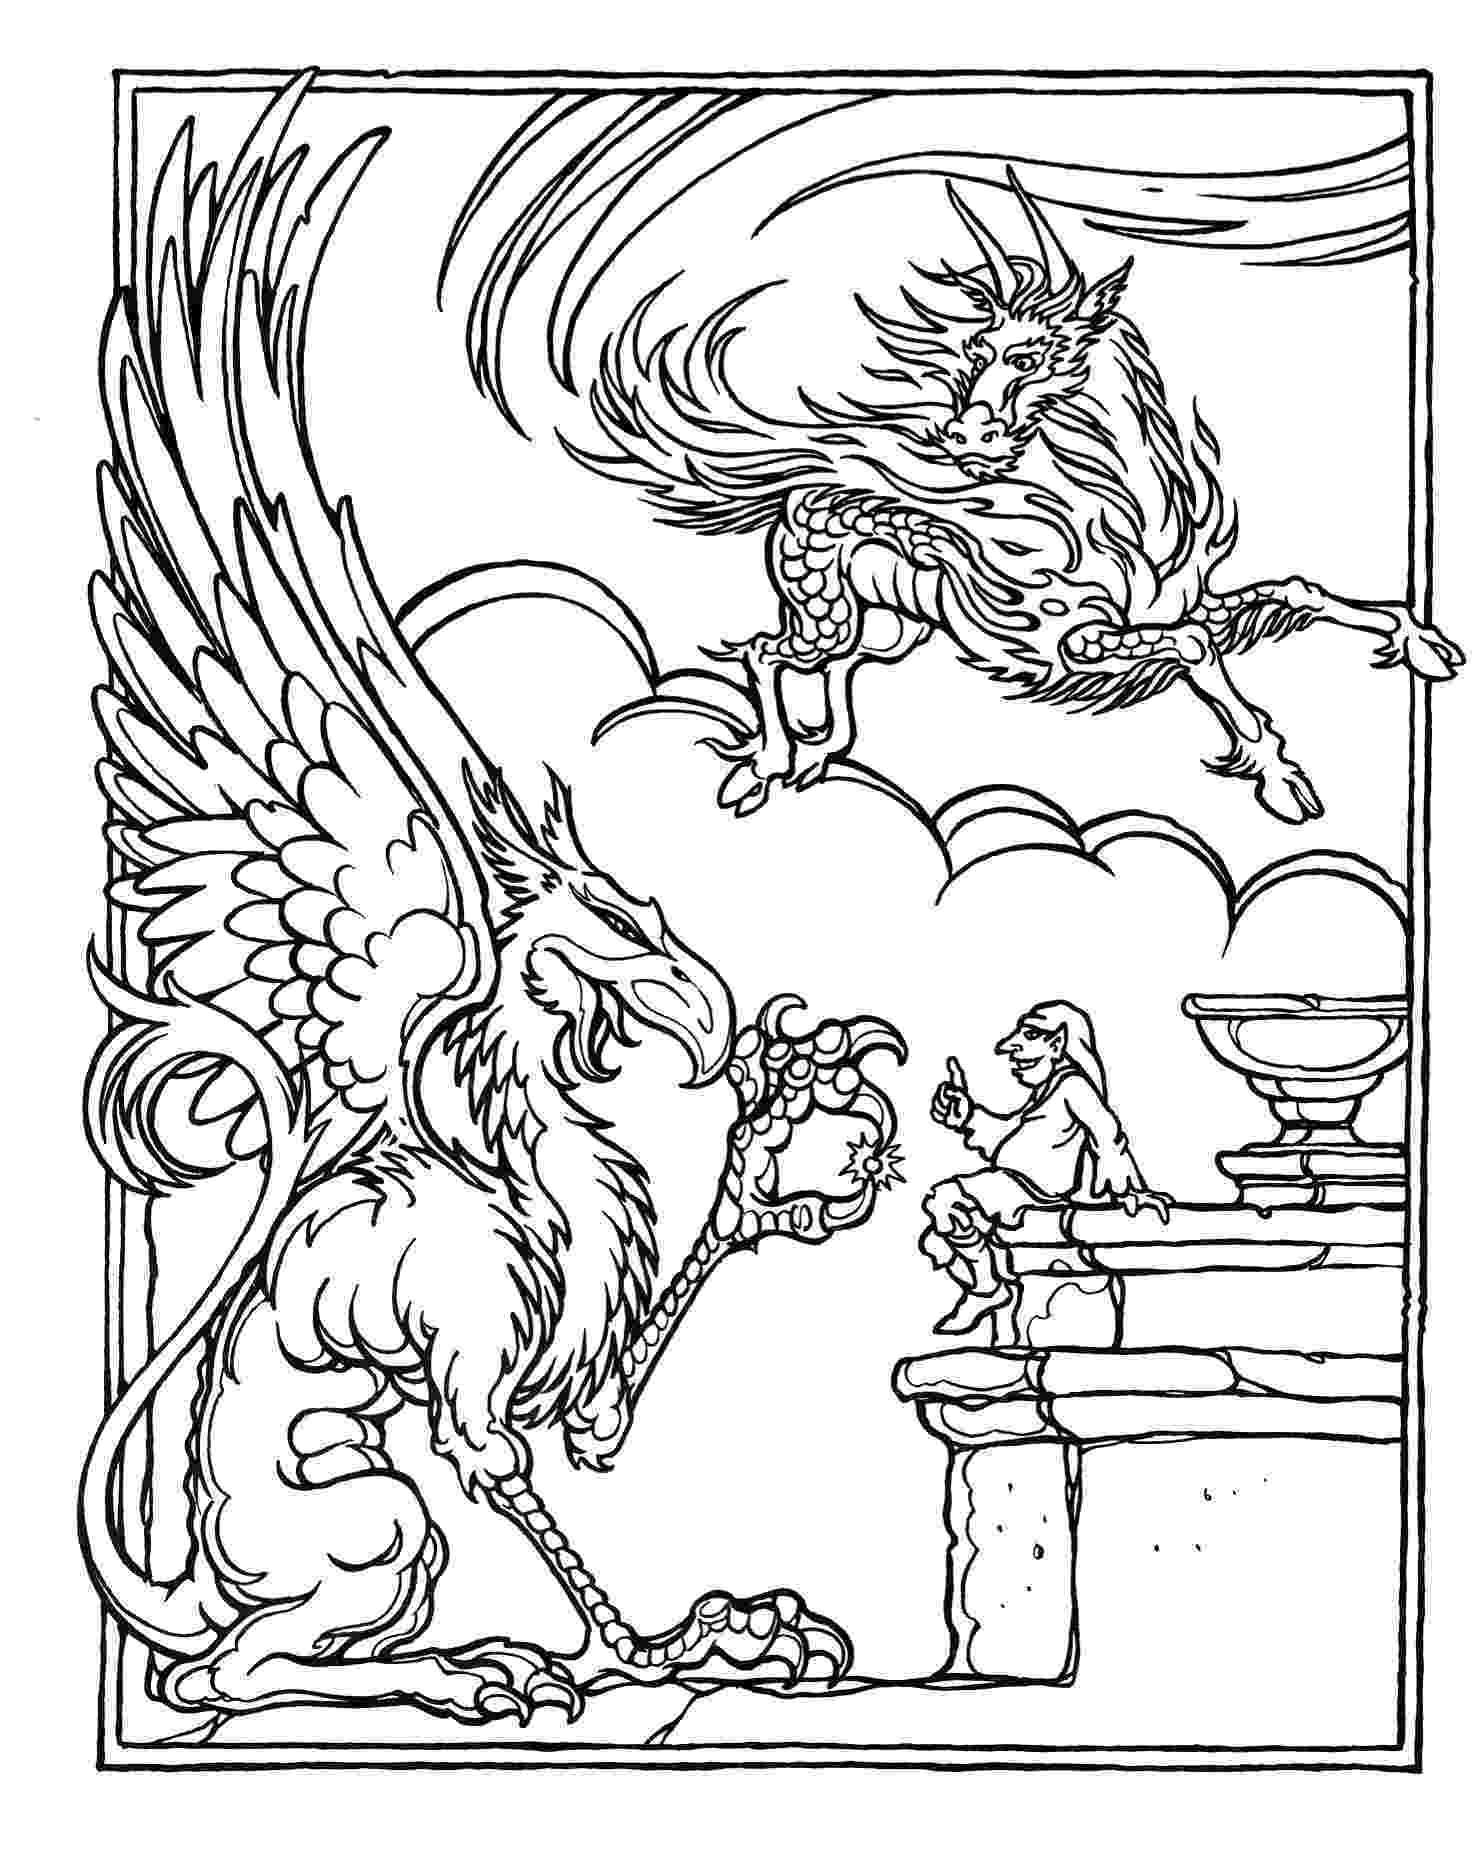 dragon color sheets dragon coloring pages to download and print for free dragon color sheets